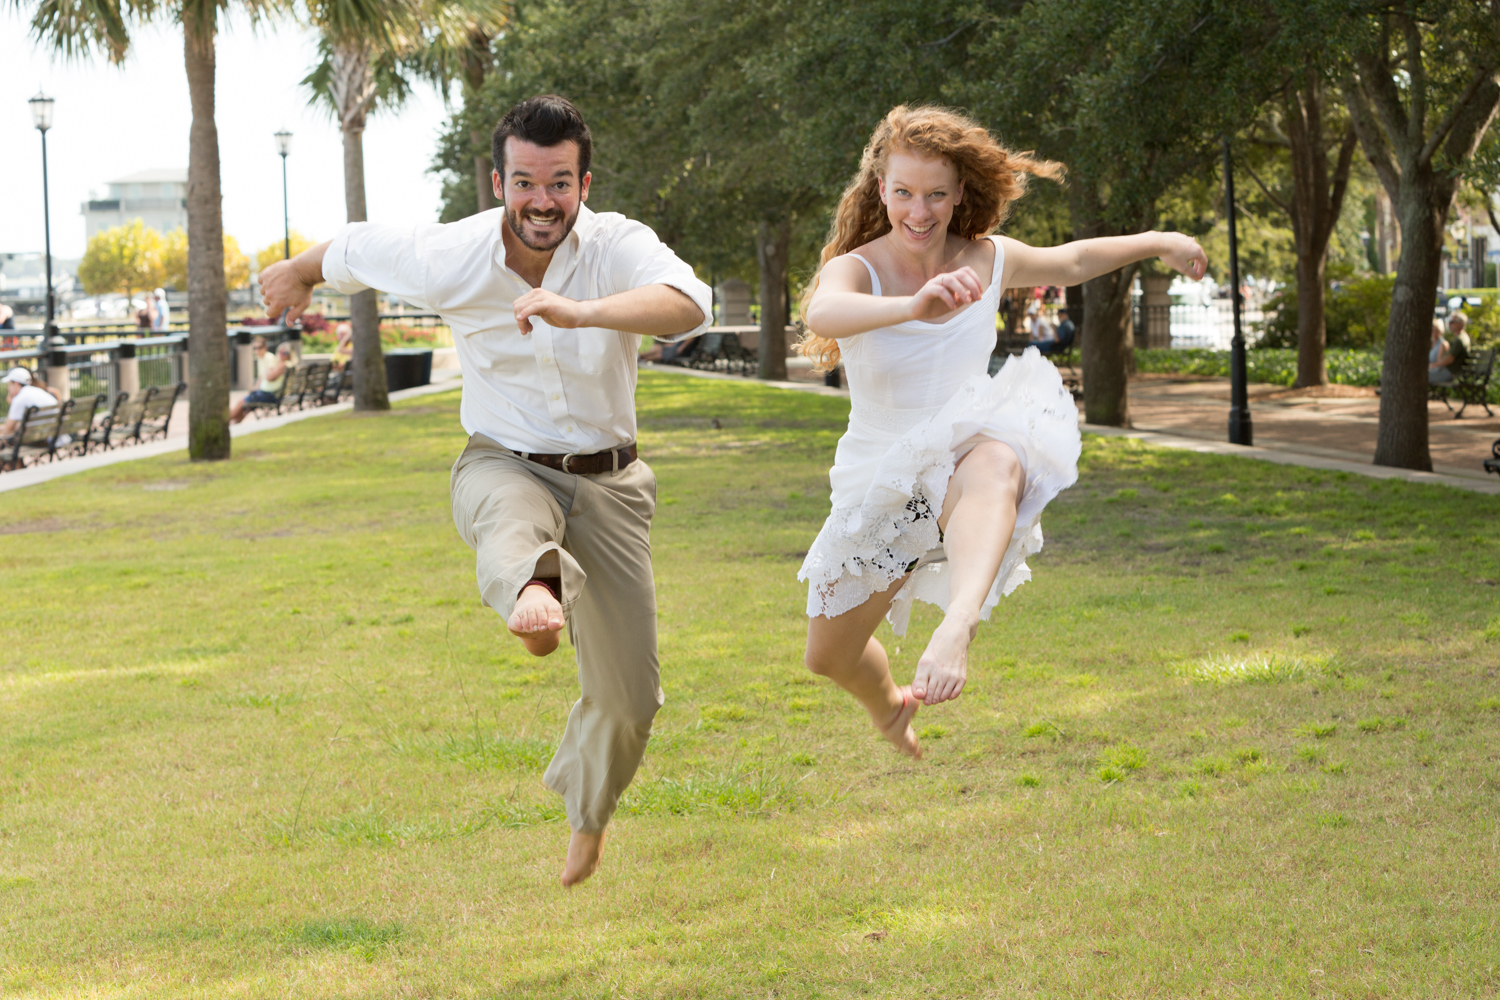 engagement photography, Charleston south Carolina, dance photography